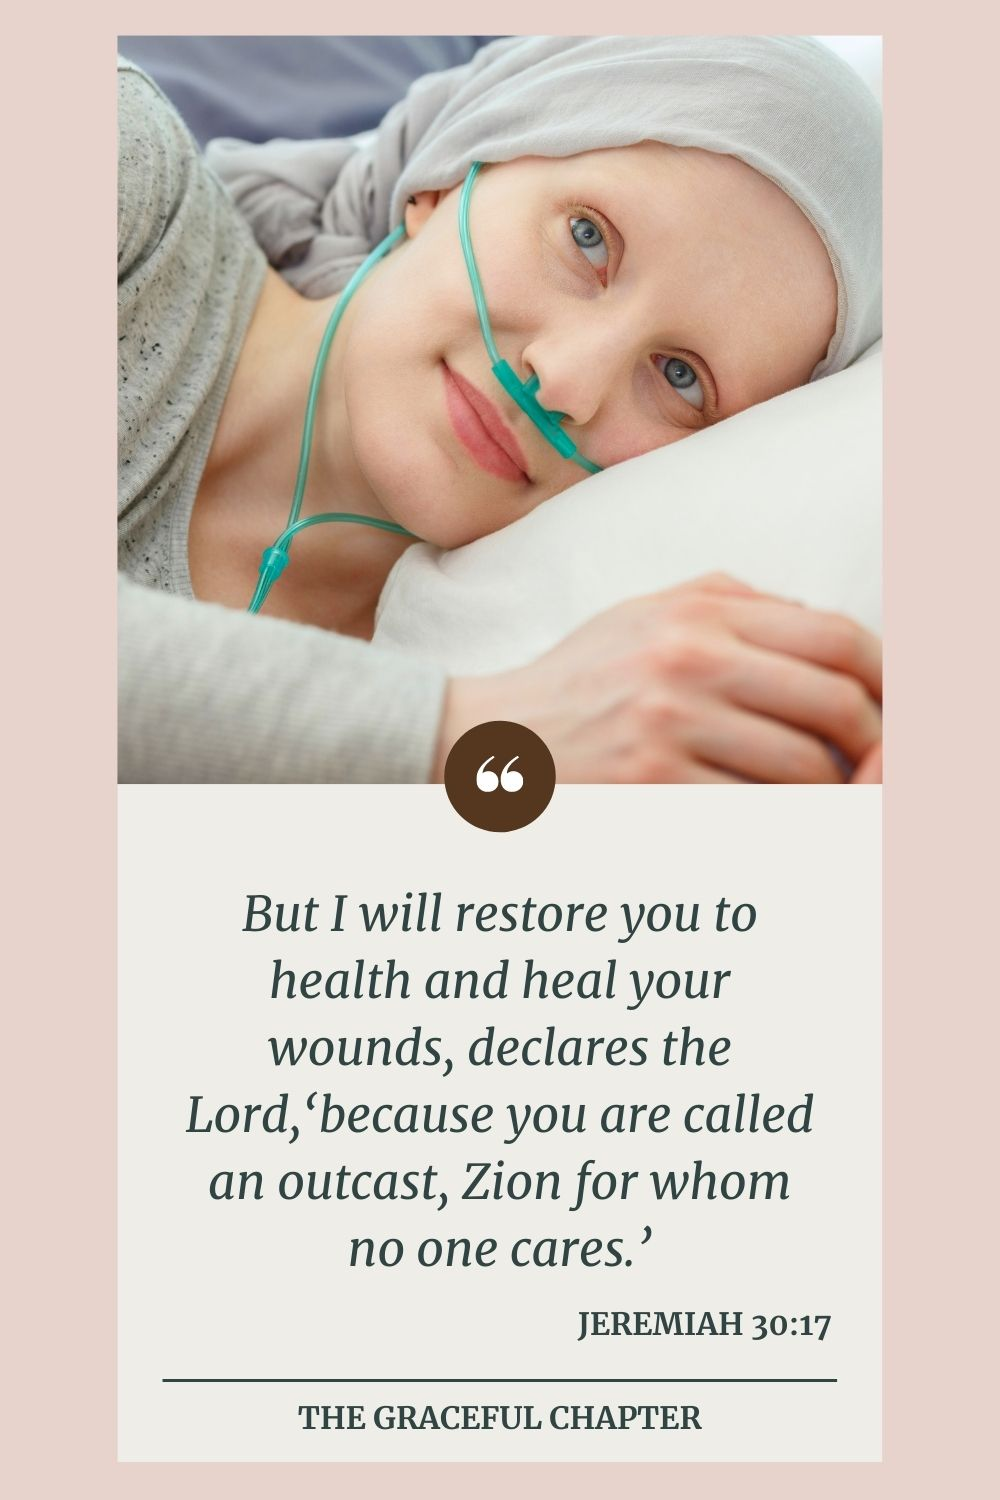 But I will restore you to health and heal your wounds,  declares the Lord, because you are called an outcast,  Zion for whom no one cares.' -Jeremiah 30:17